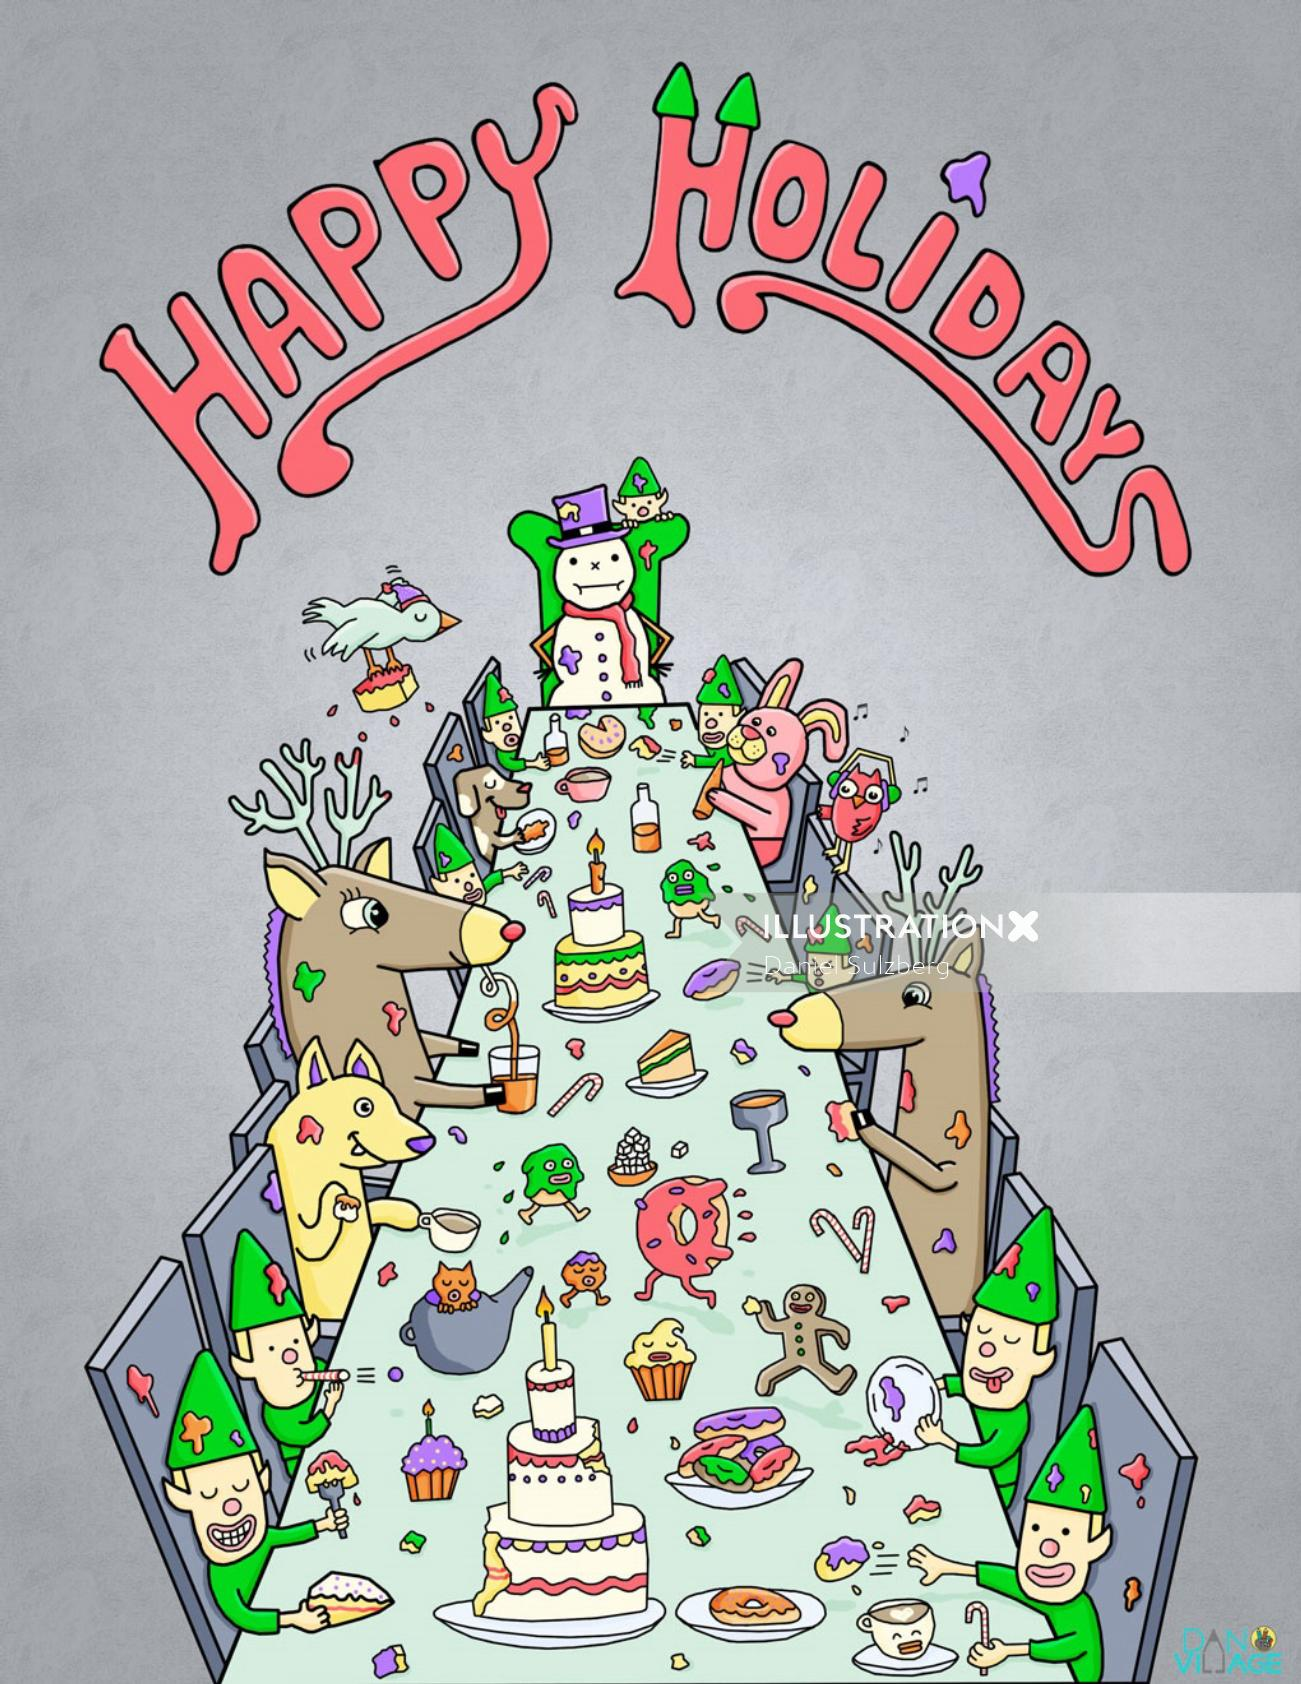 Happy Holidays Meal children digital art